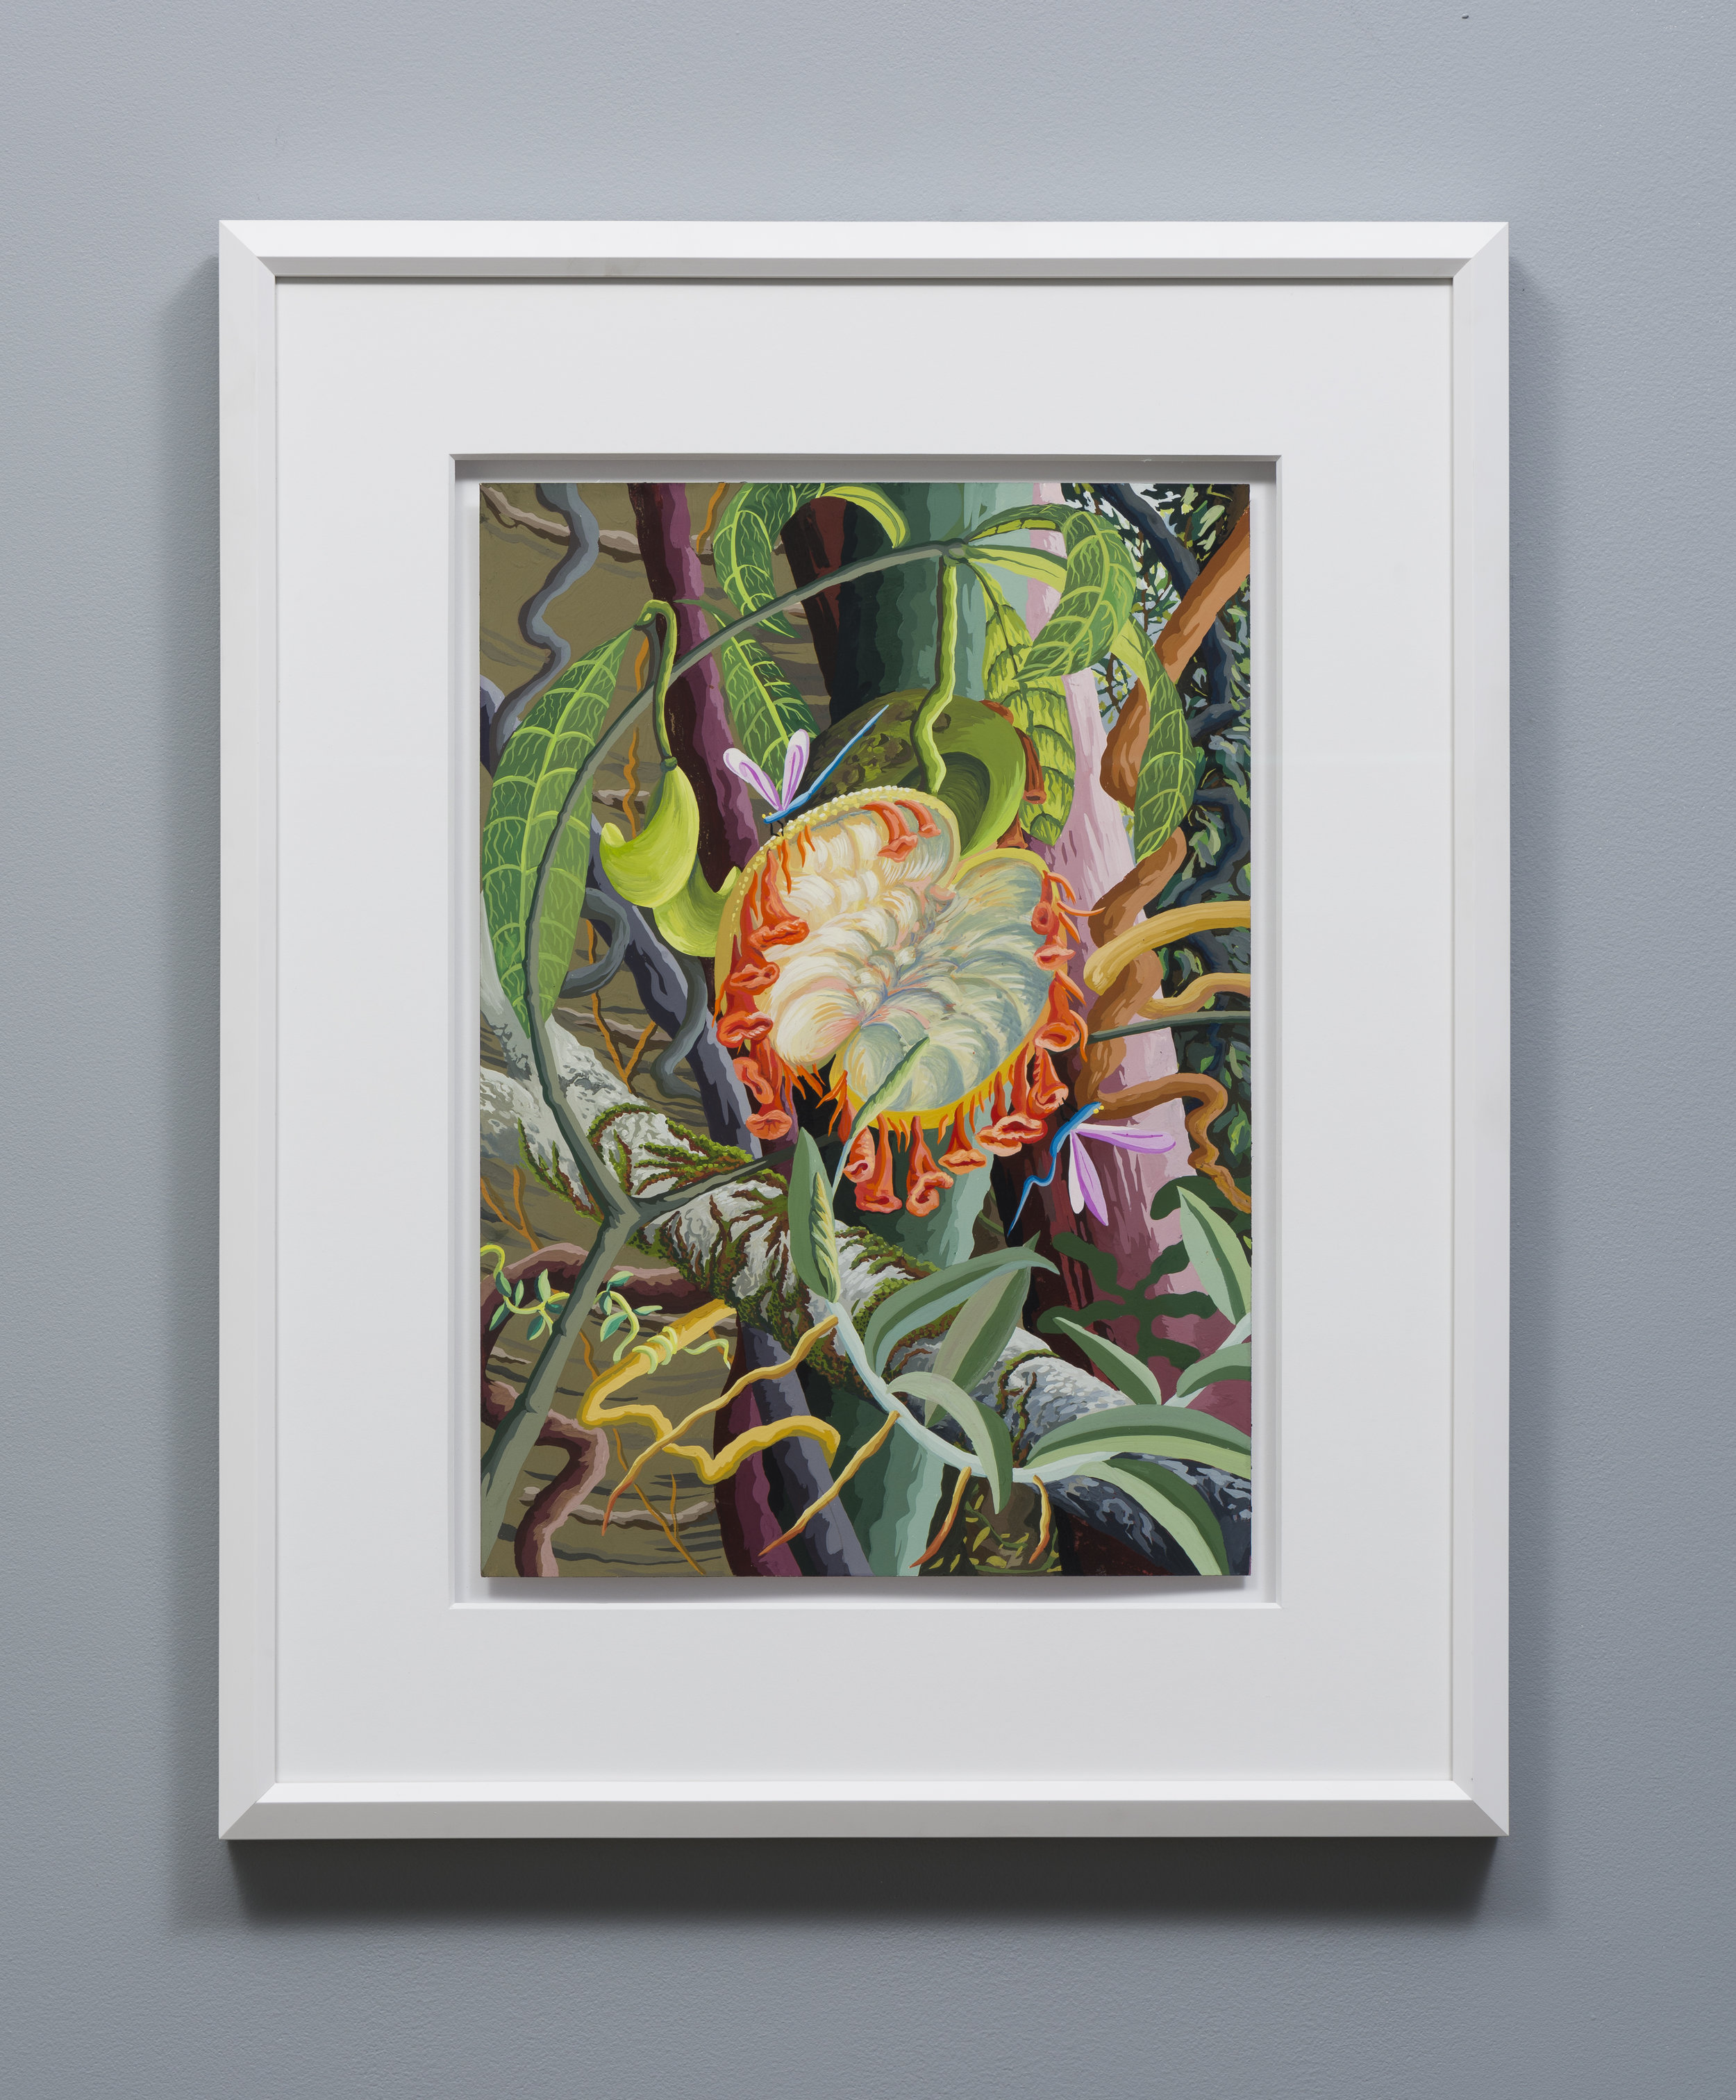 Suzan Pitt  Blooming Fruit   1992-1993 Gouache on paper 20 x 14 inches paper, 29.5 x 13.5 inches frame